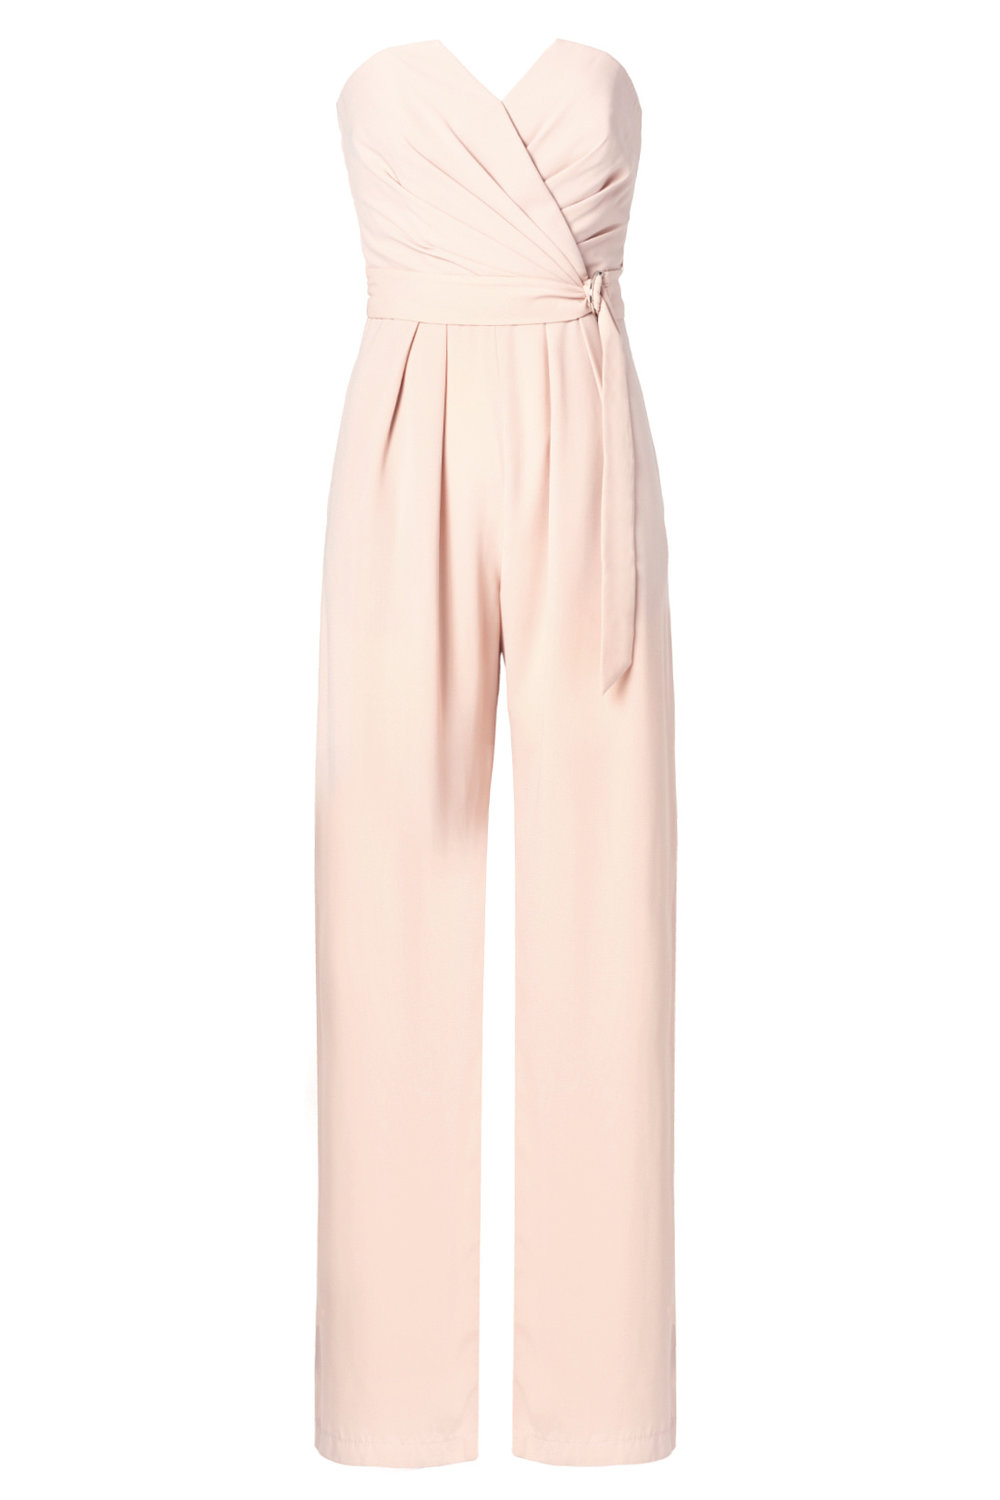 East Side Jumpsuit by Jill Jill Stuart  - Why It Works:  The soft color is super feminine and can be dressed up or down depending on how it's accessorized.  It's tailored but not stiff and is a fun alternative to a dress if you're not a dress-wearing kinda gal.